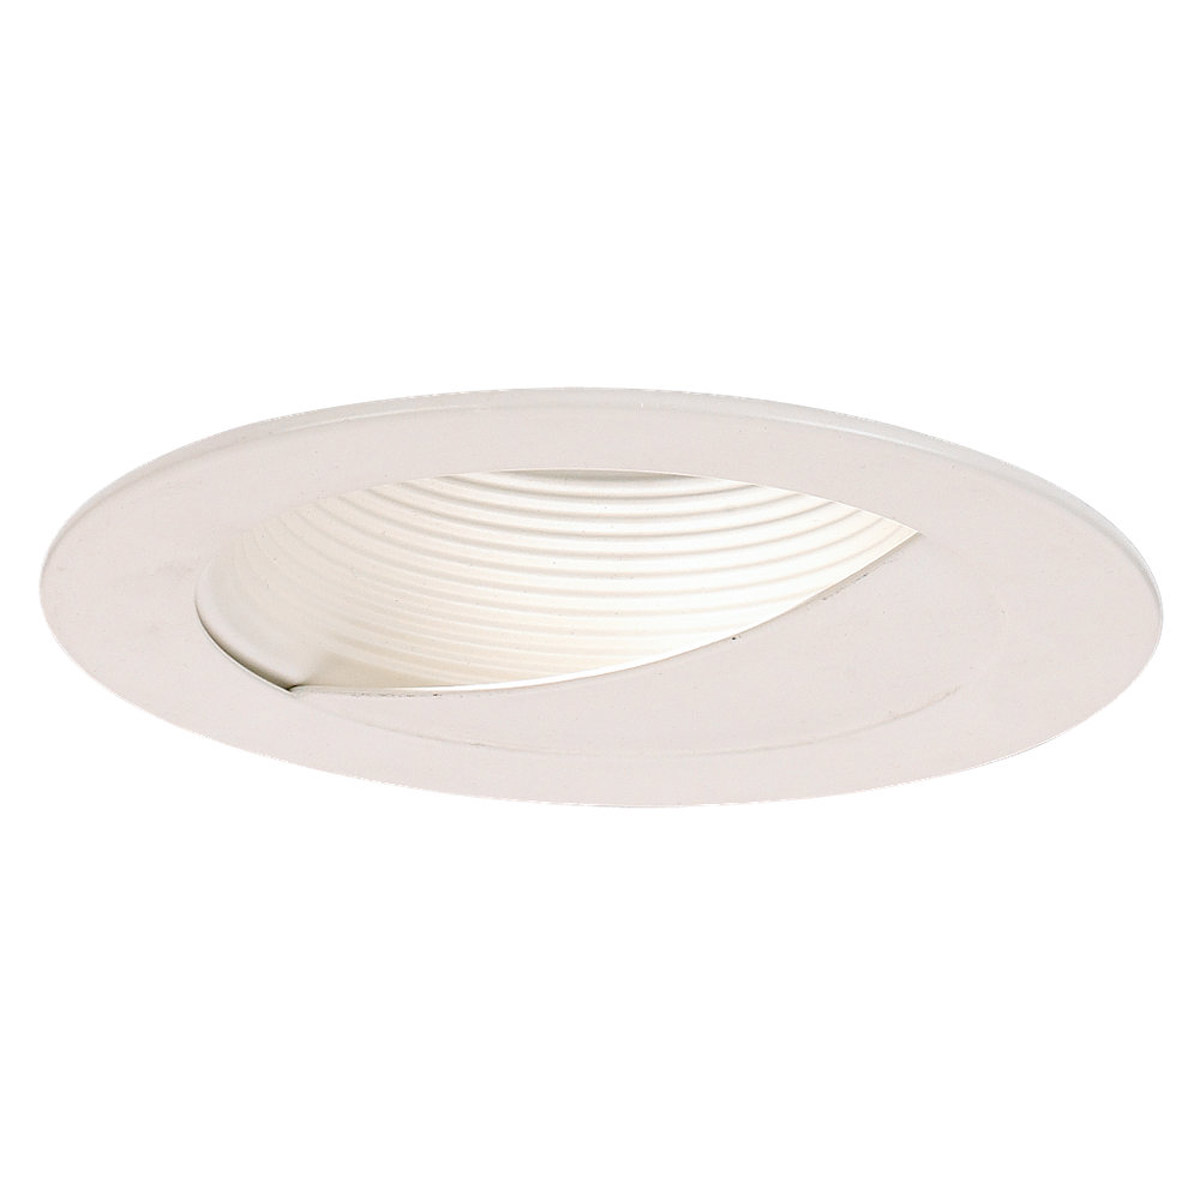 Sea Gull Lighting Signature Recessed Trim Only in White 12040AT-15